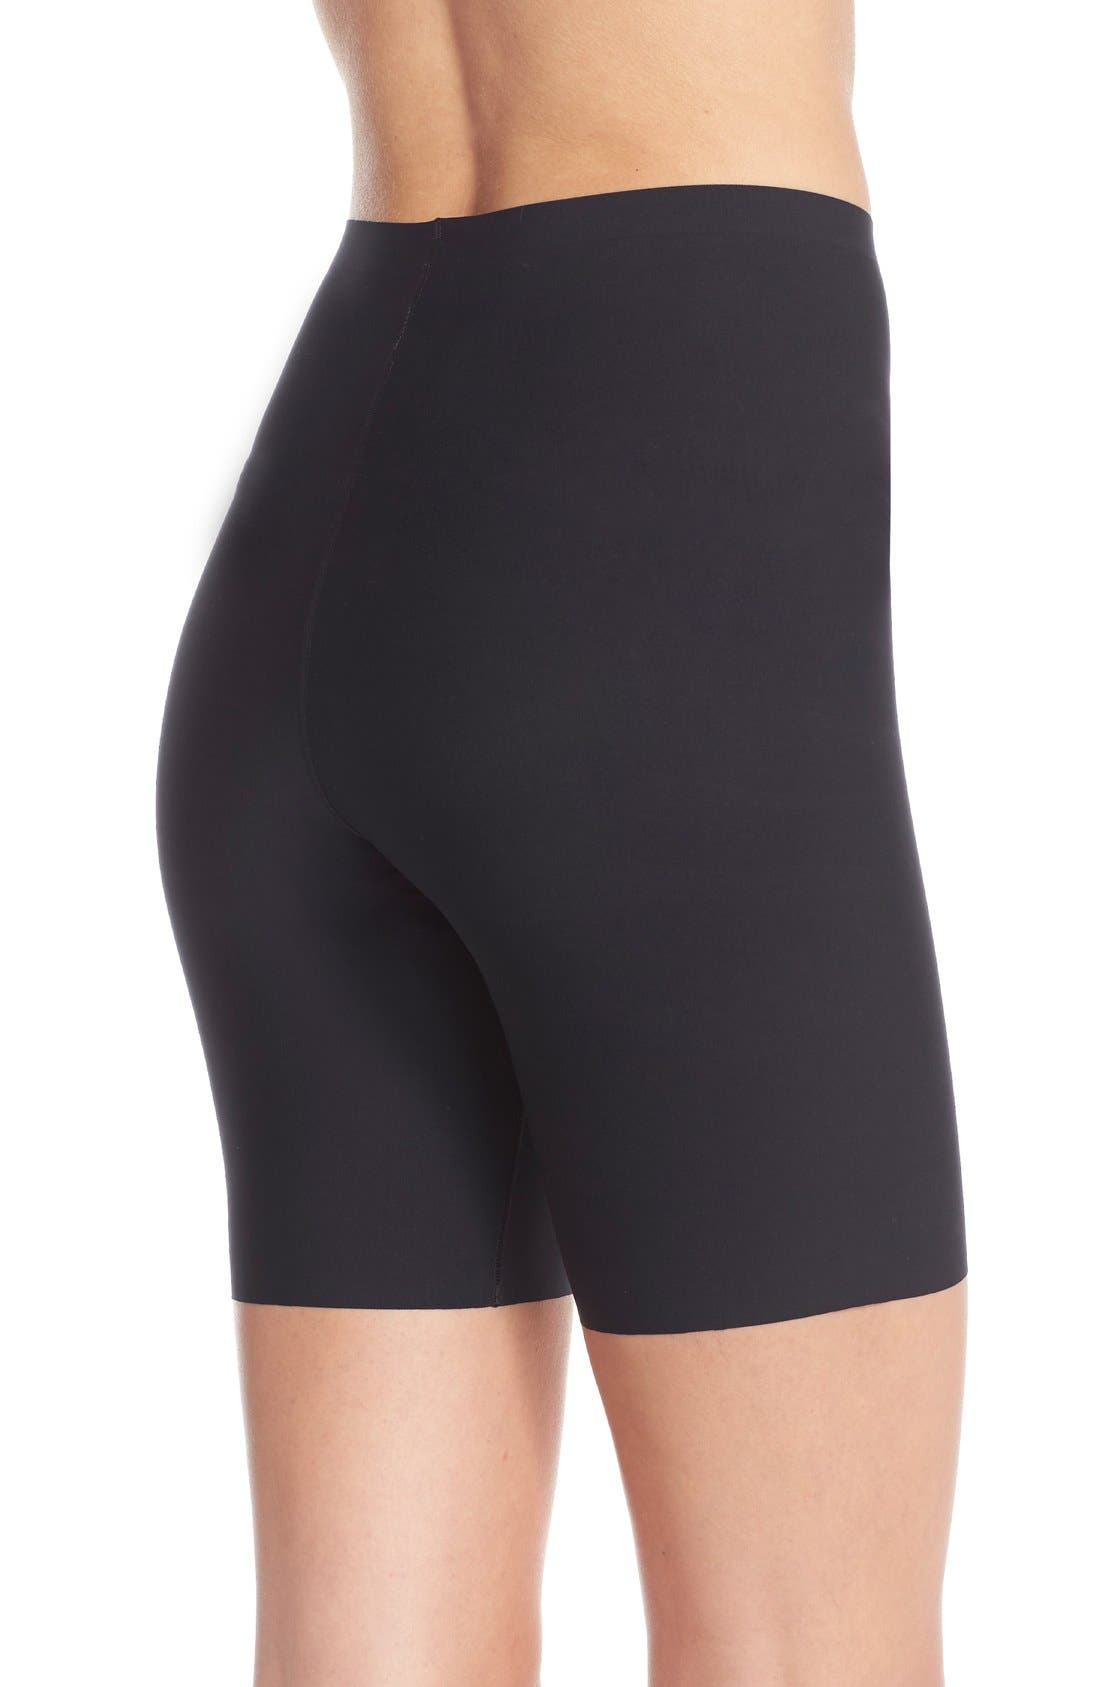 Thinstincts Mid Thigh Shorts,                             Alternate thumbnail 2, color,                             Very Black